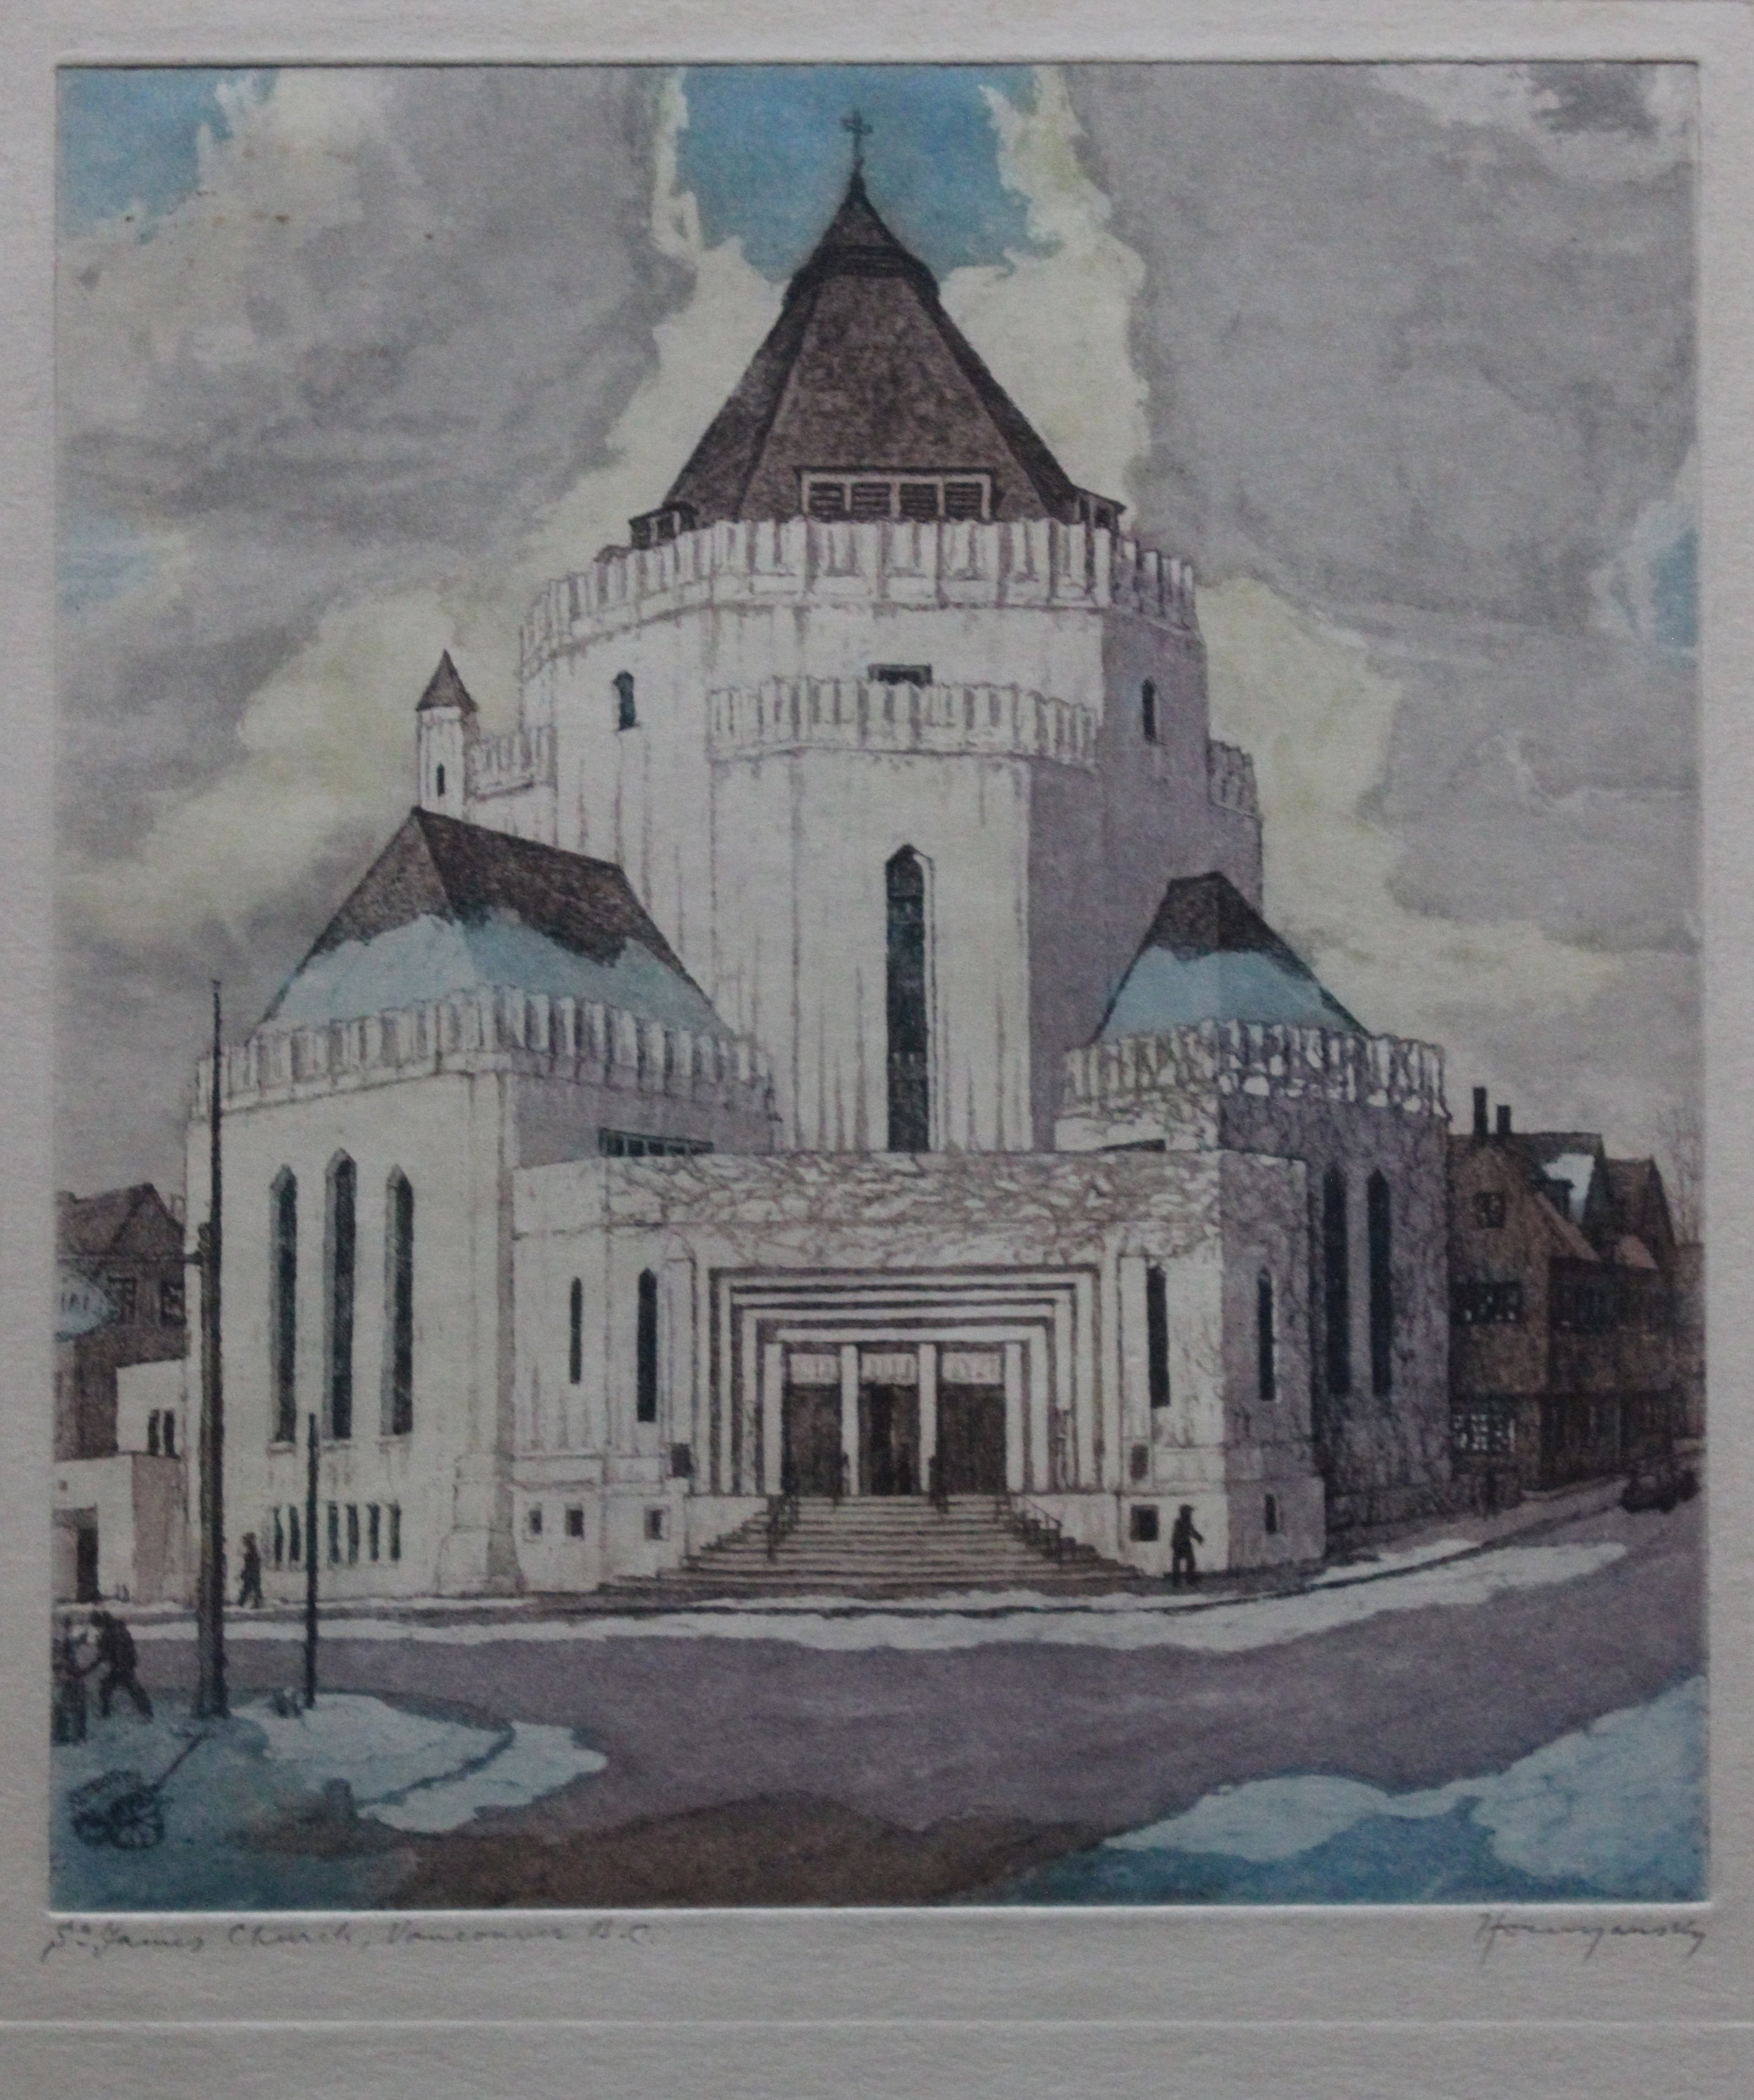 Nicholas Hornyansky, St. James Church, Vancouver, BC, 1948